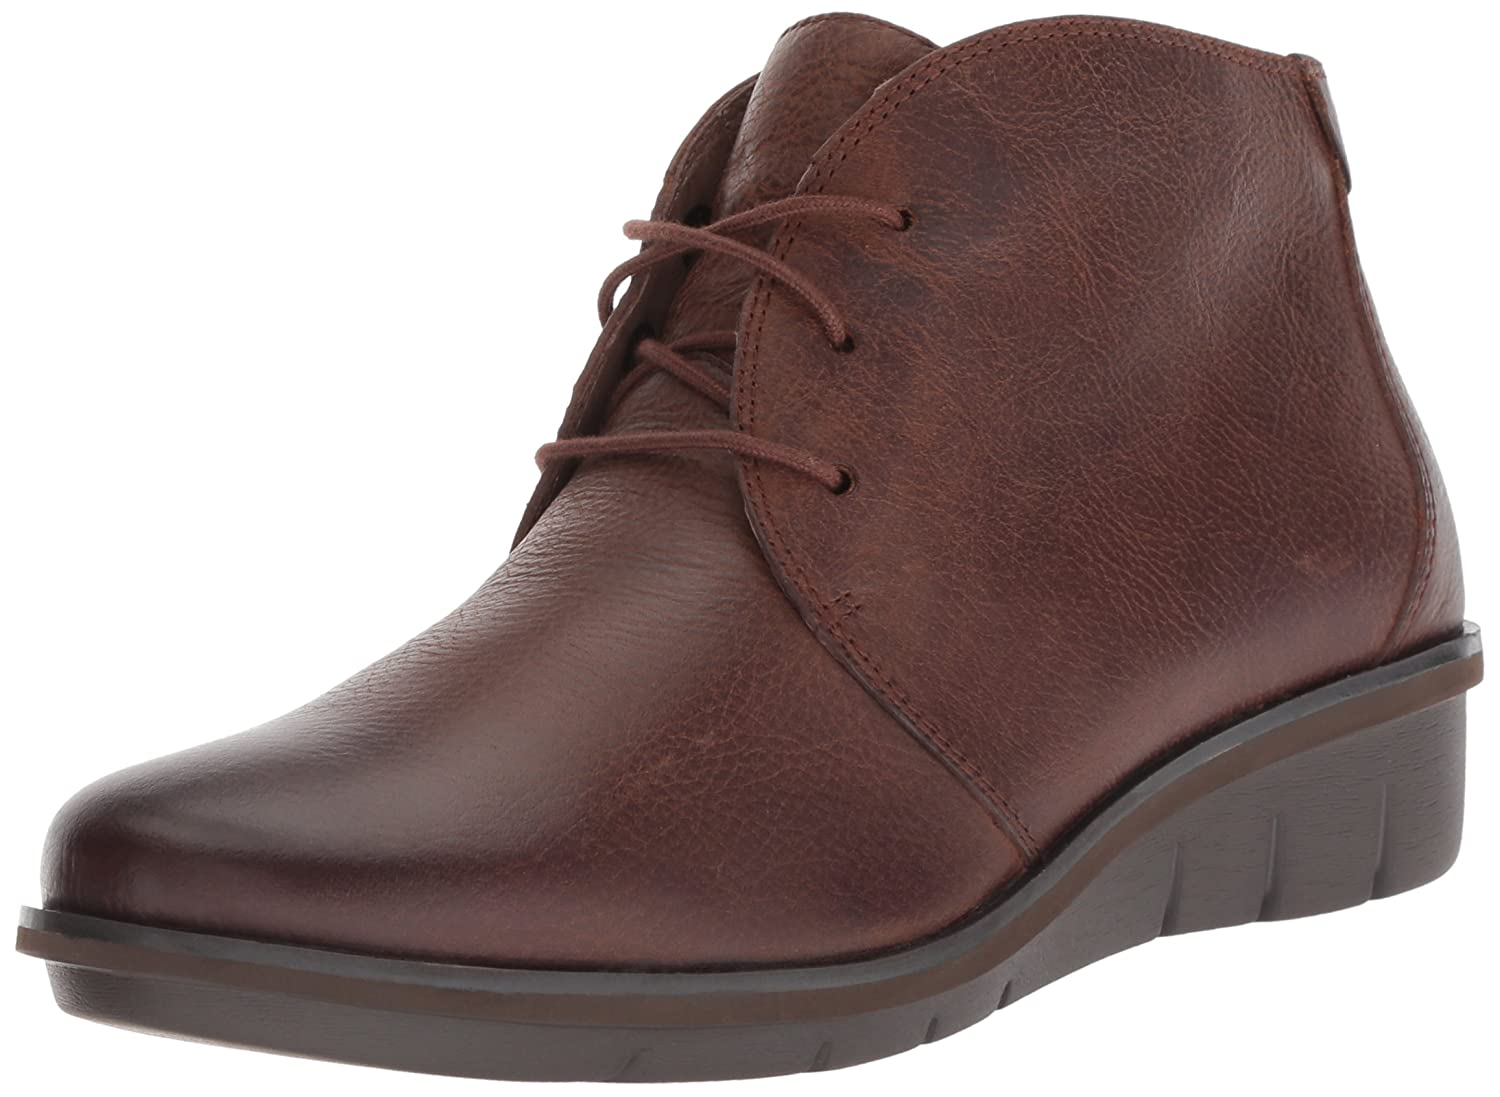 Dansko Women's Joy Ankle Boot B077VYV7P7 38 M EU (7.5-8 US)|Brown Burnished Nubuck